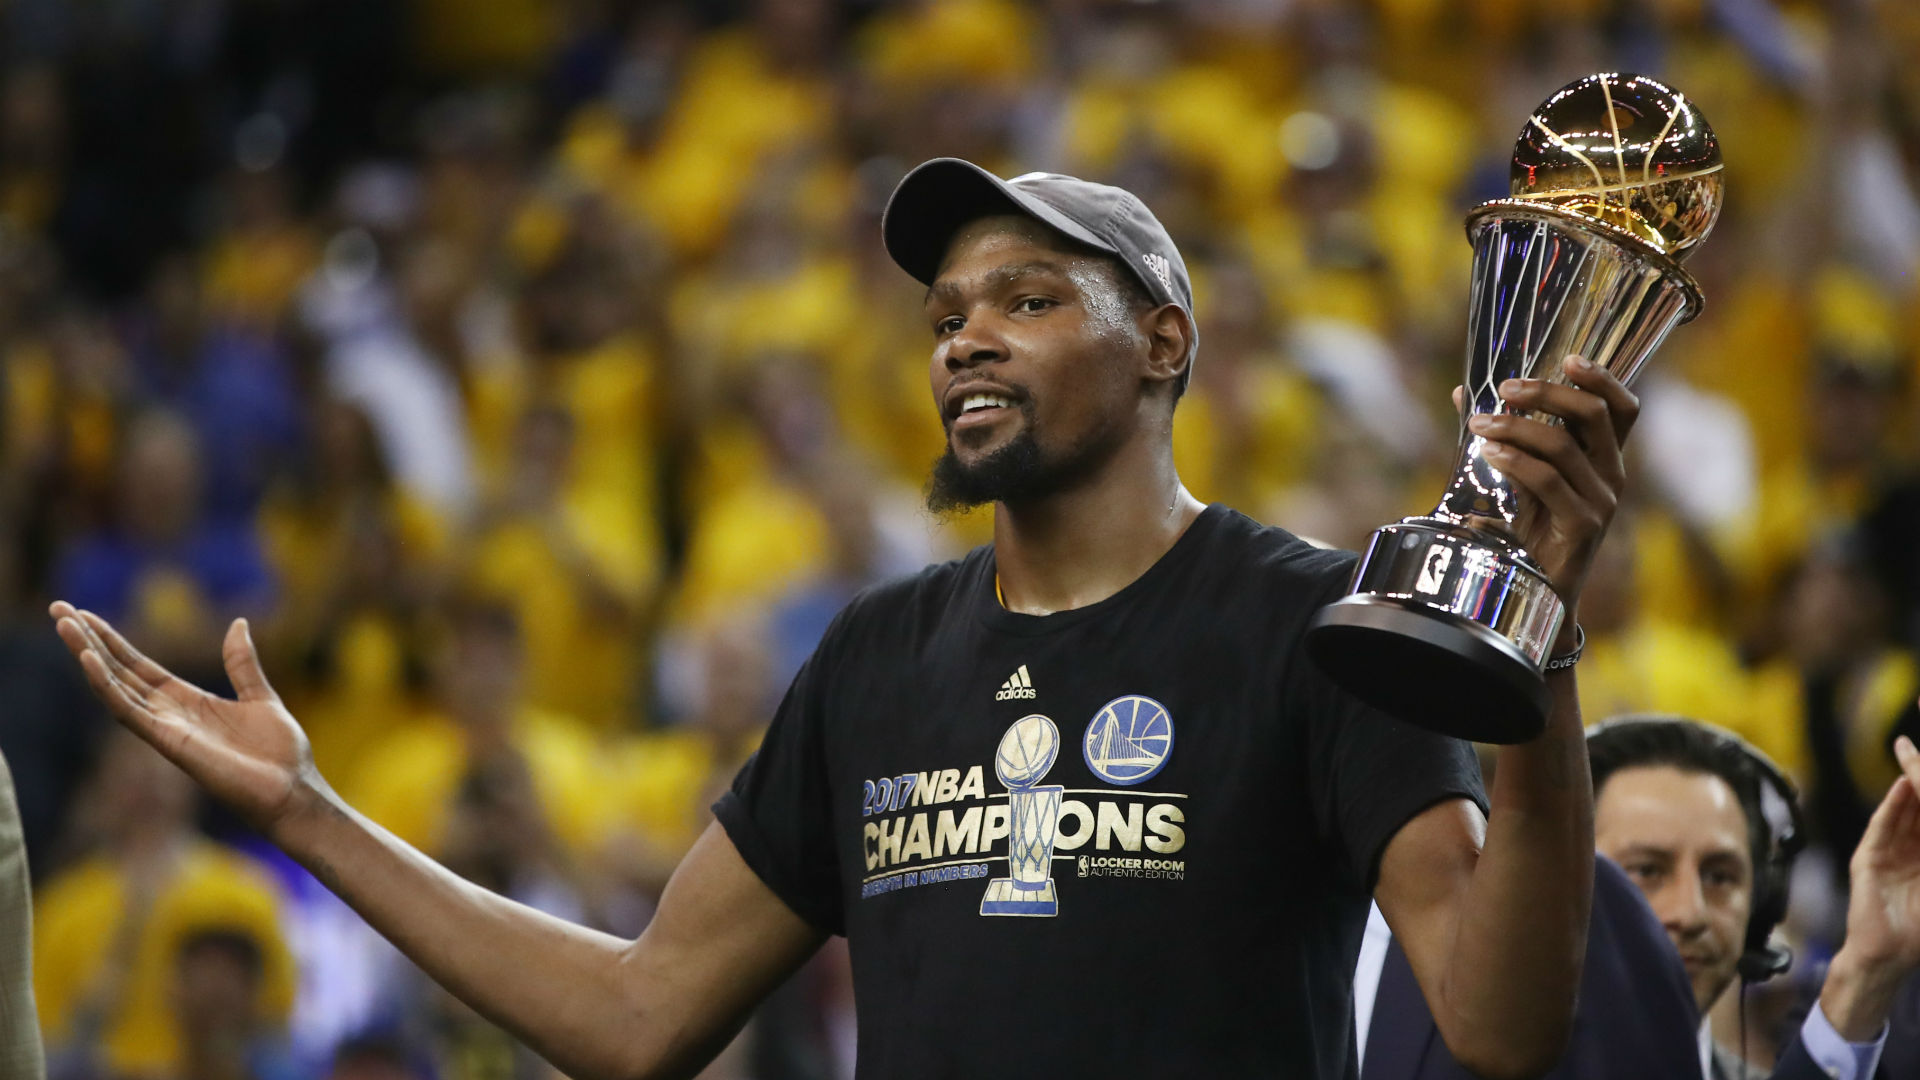 Warriors beat Cavaliers in Game 5, win NBA title